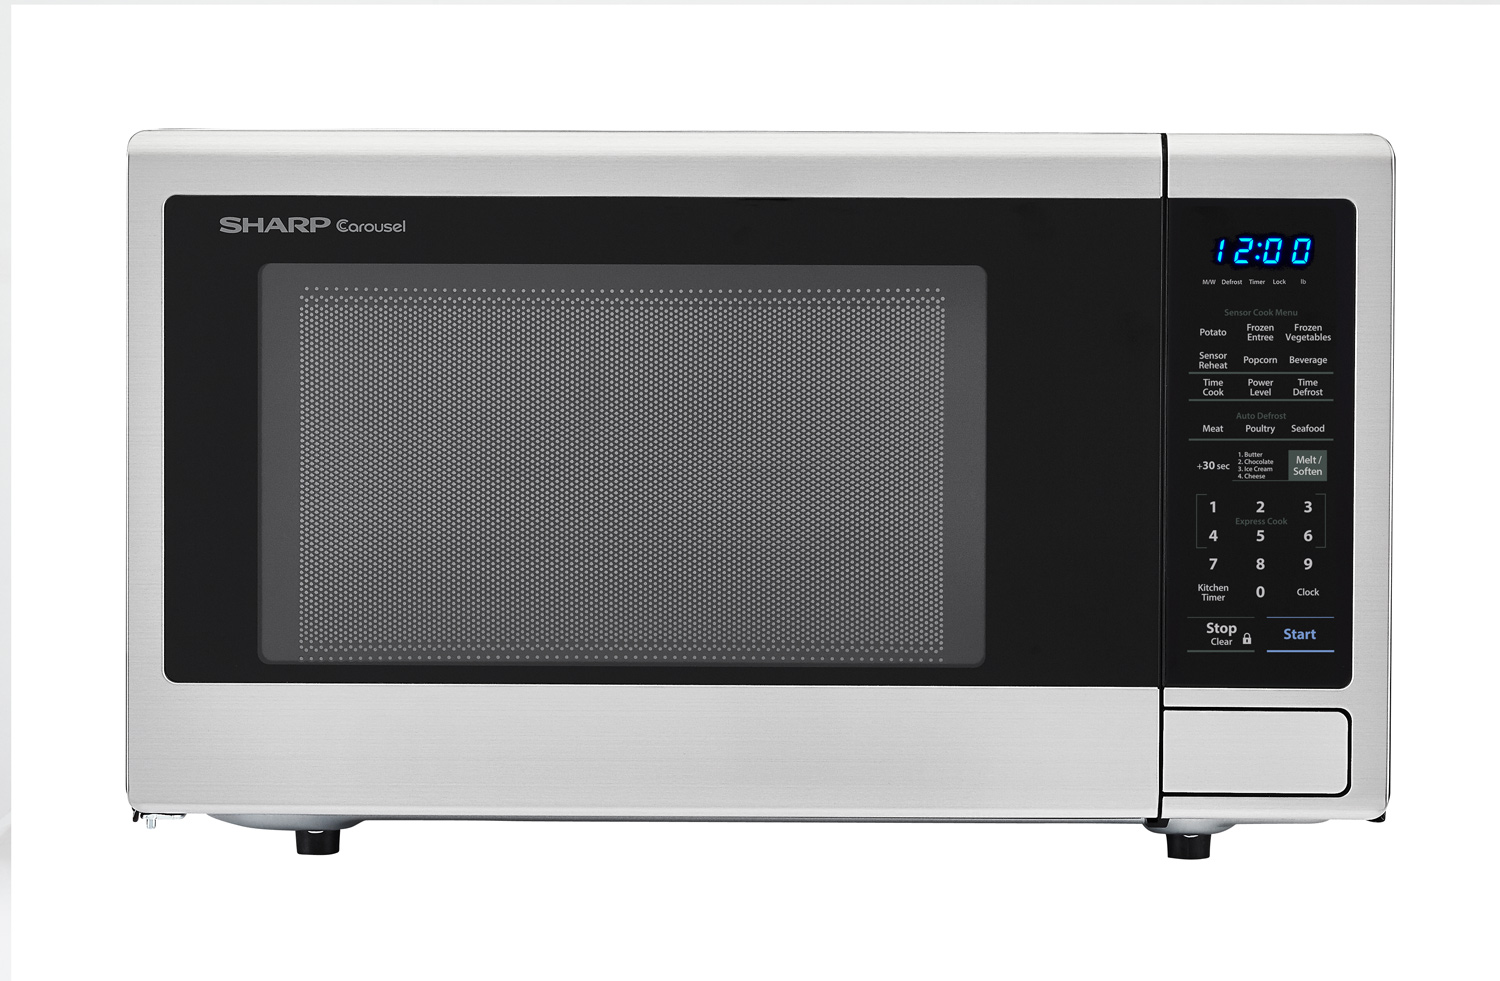 Countertop Cooking Appliances Smc1840cs 1 8 Cu Ft Stainless Steel Microwave Sharp